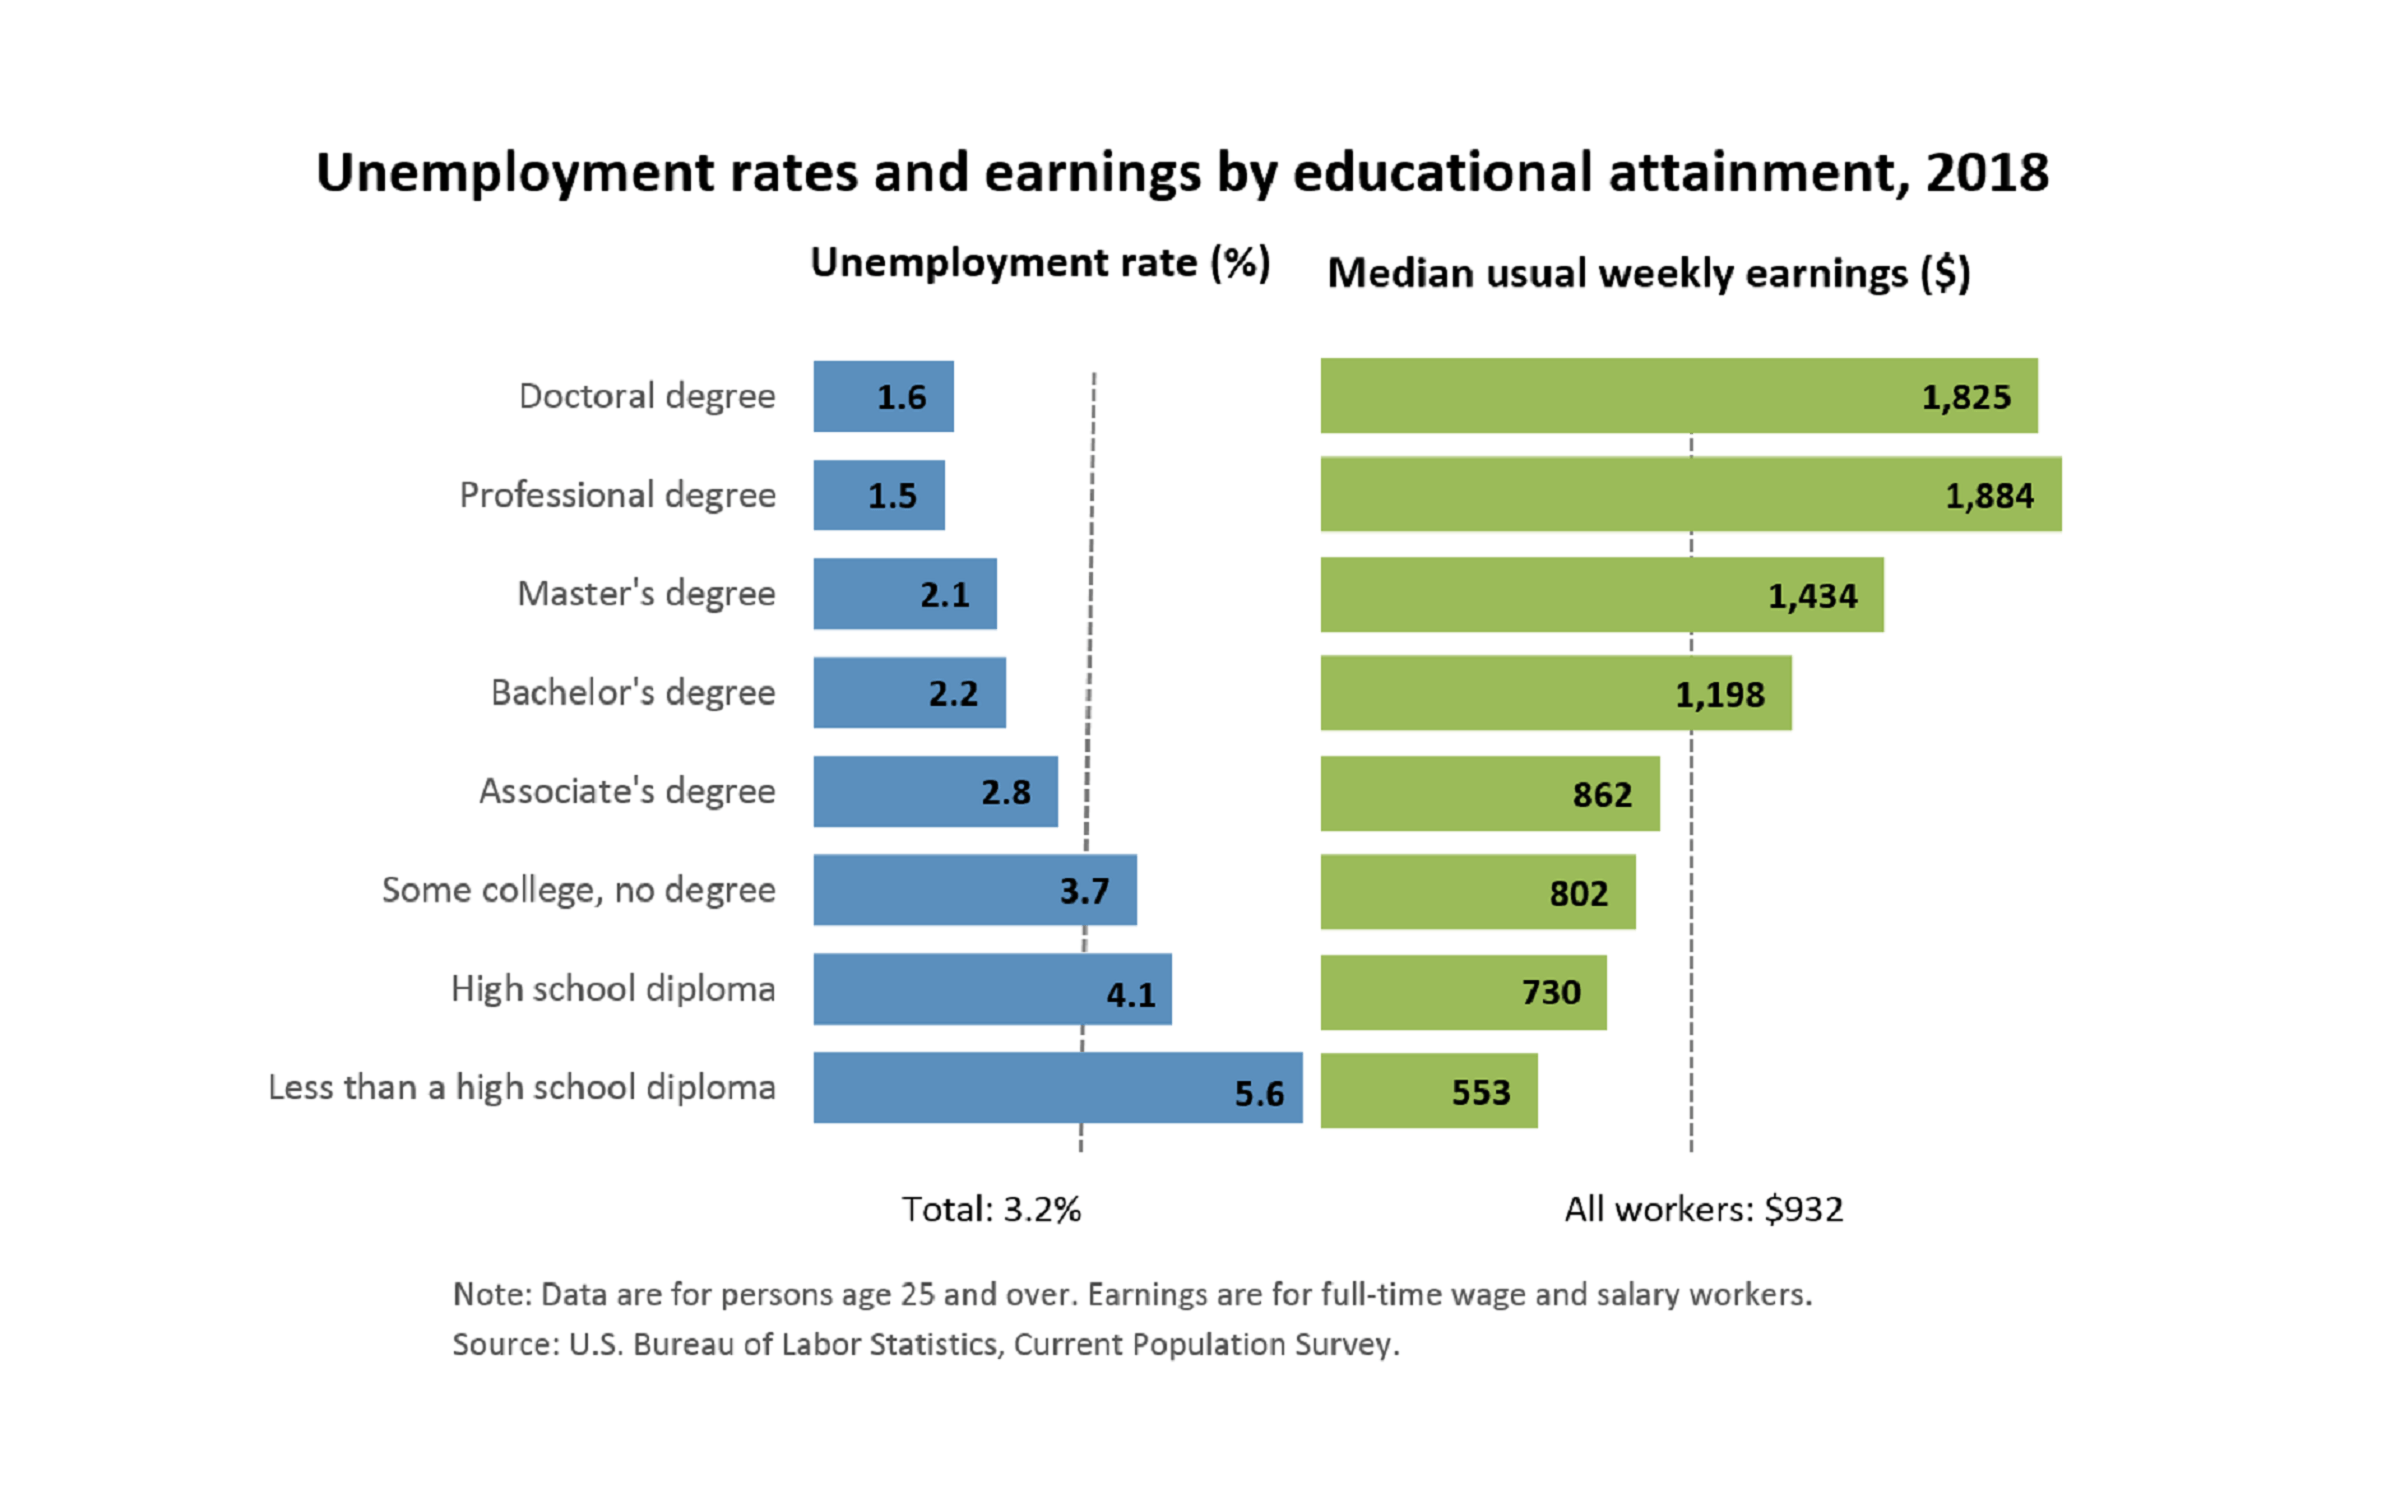 Earnings and unemployment rate by education degree